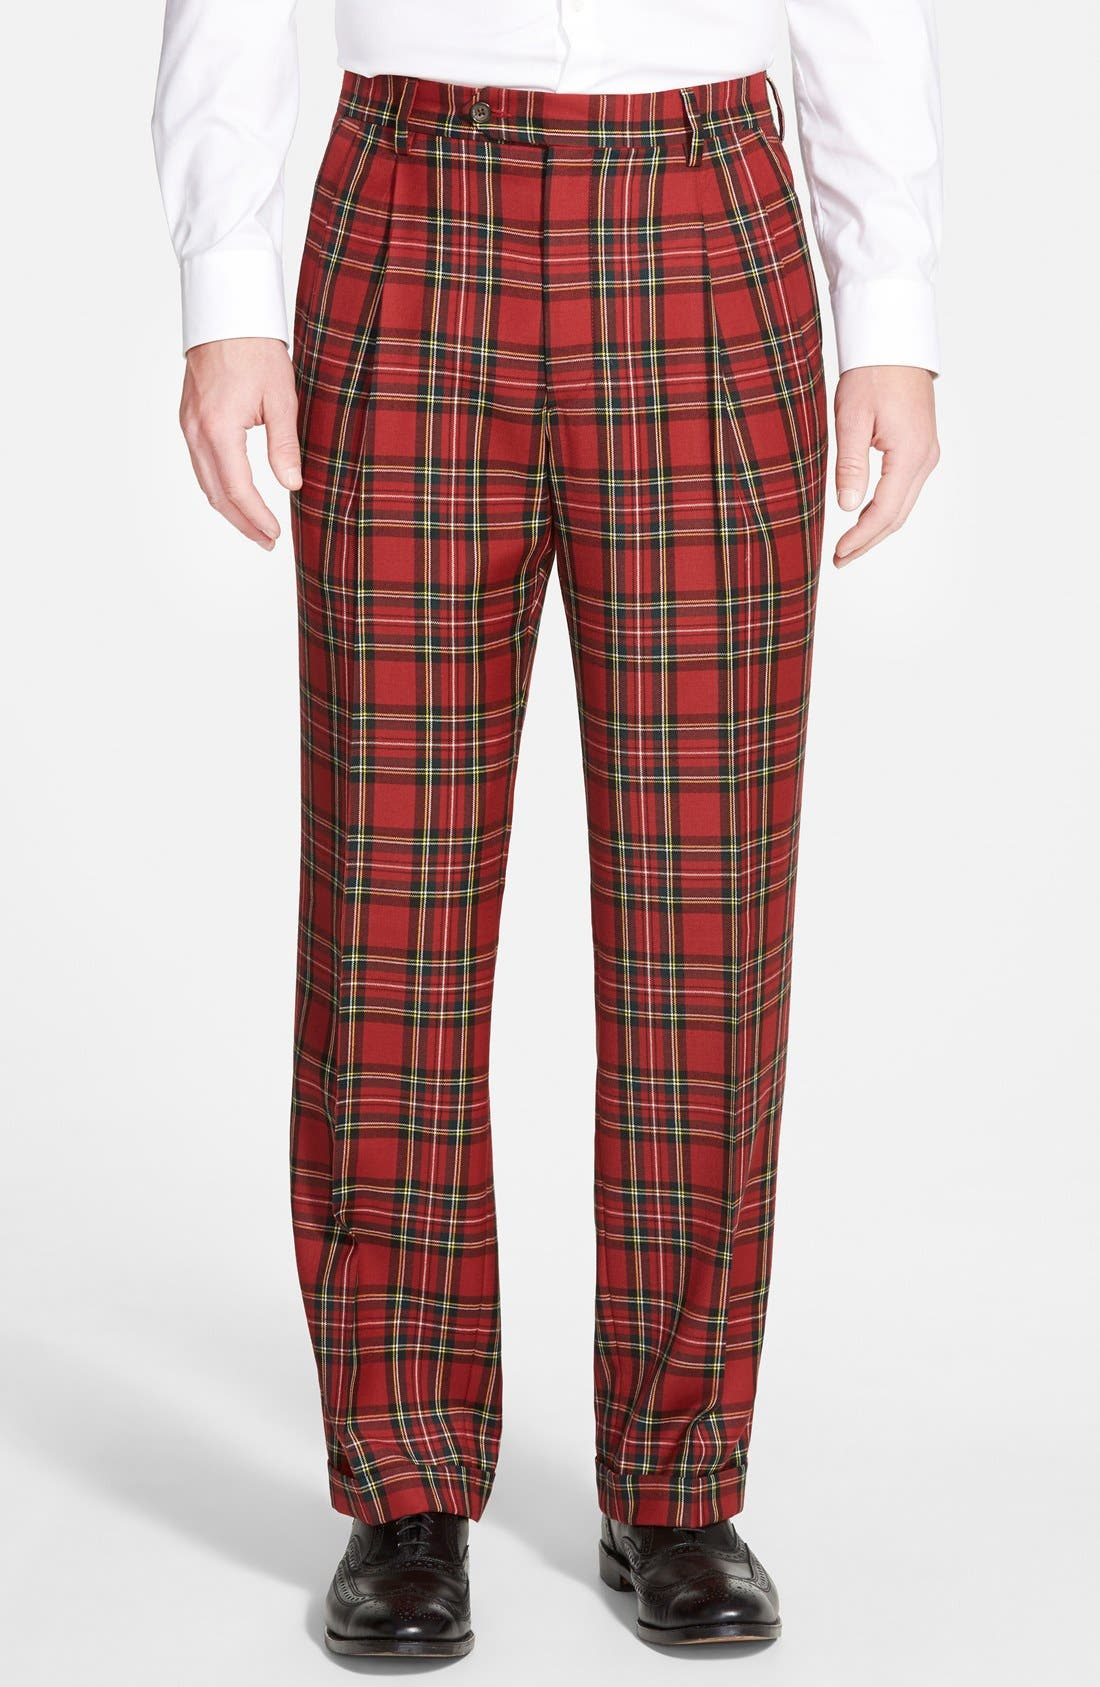 1950s Men's Clothing Mens Berle Pleated Plaid Wool Trousers Size 36 x Unhemmed - Red $175.00 AT vintagedancer.com